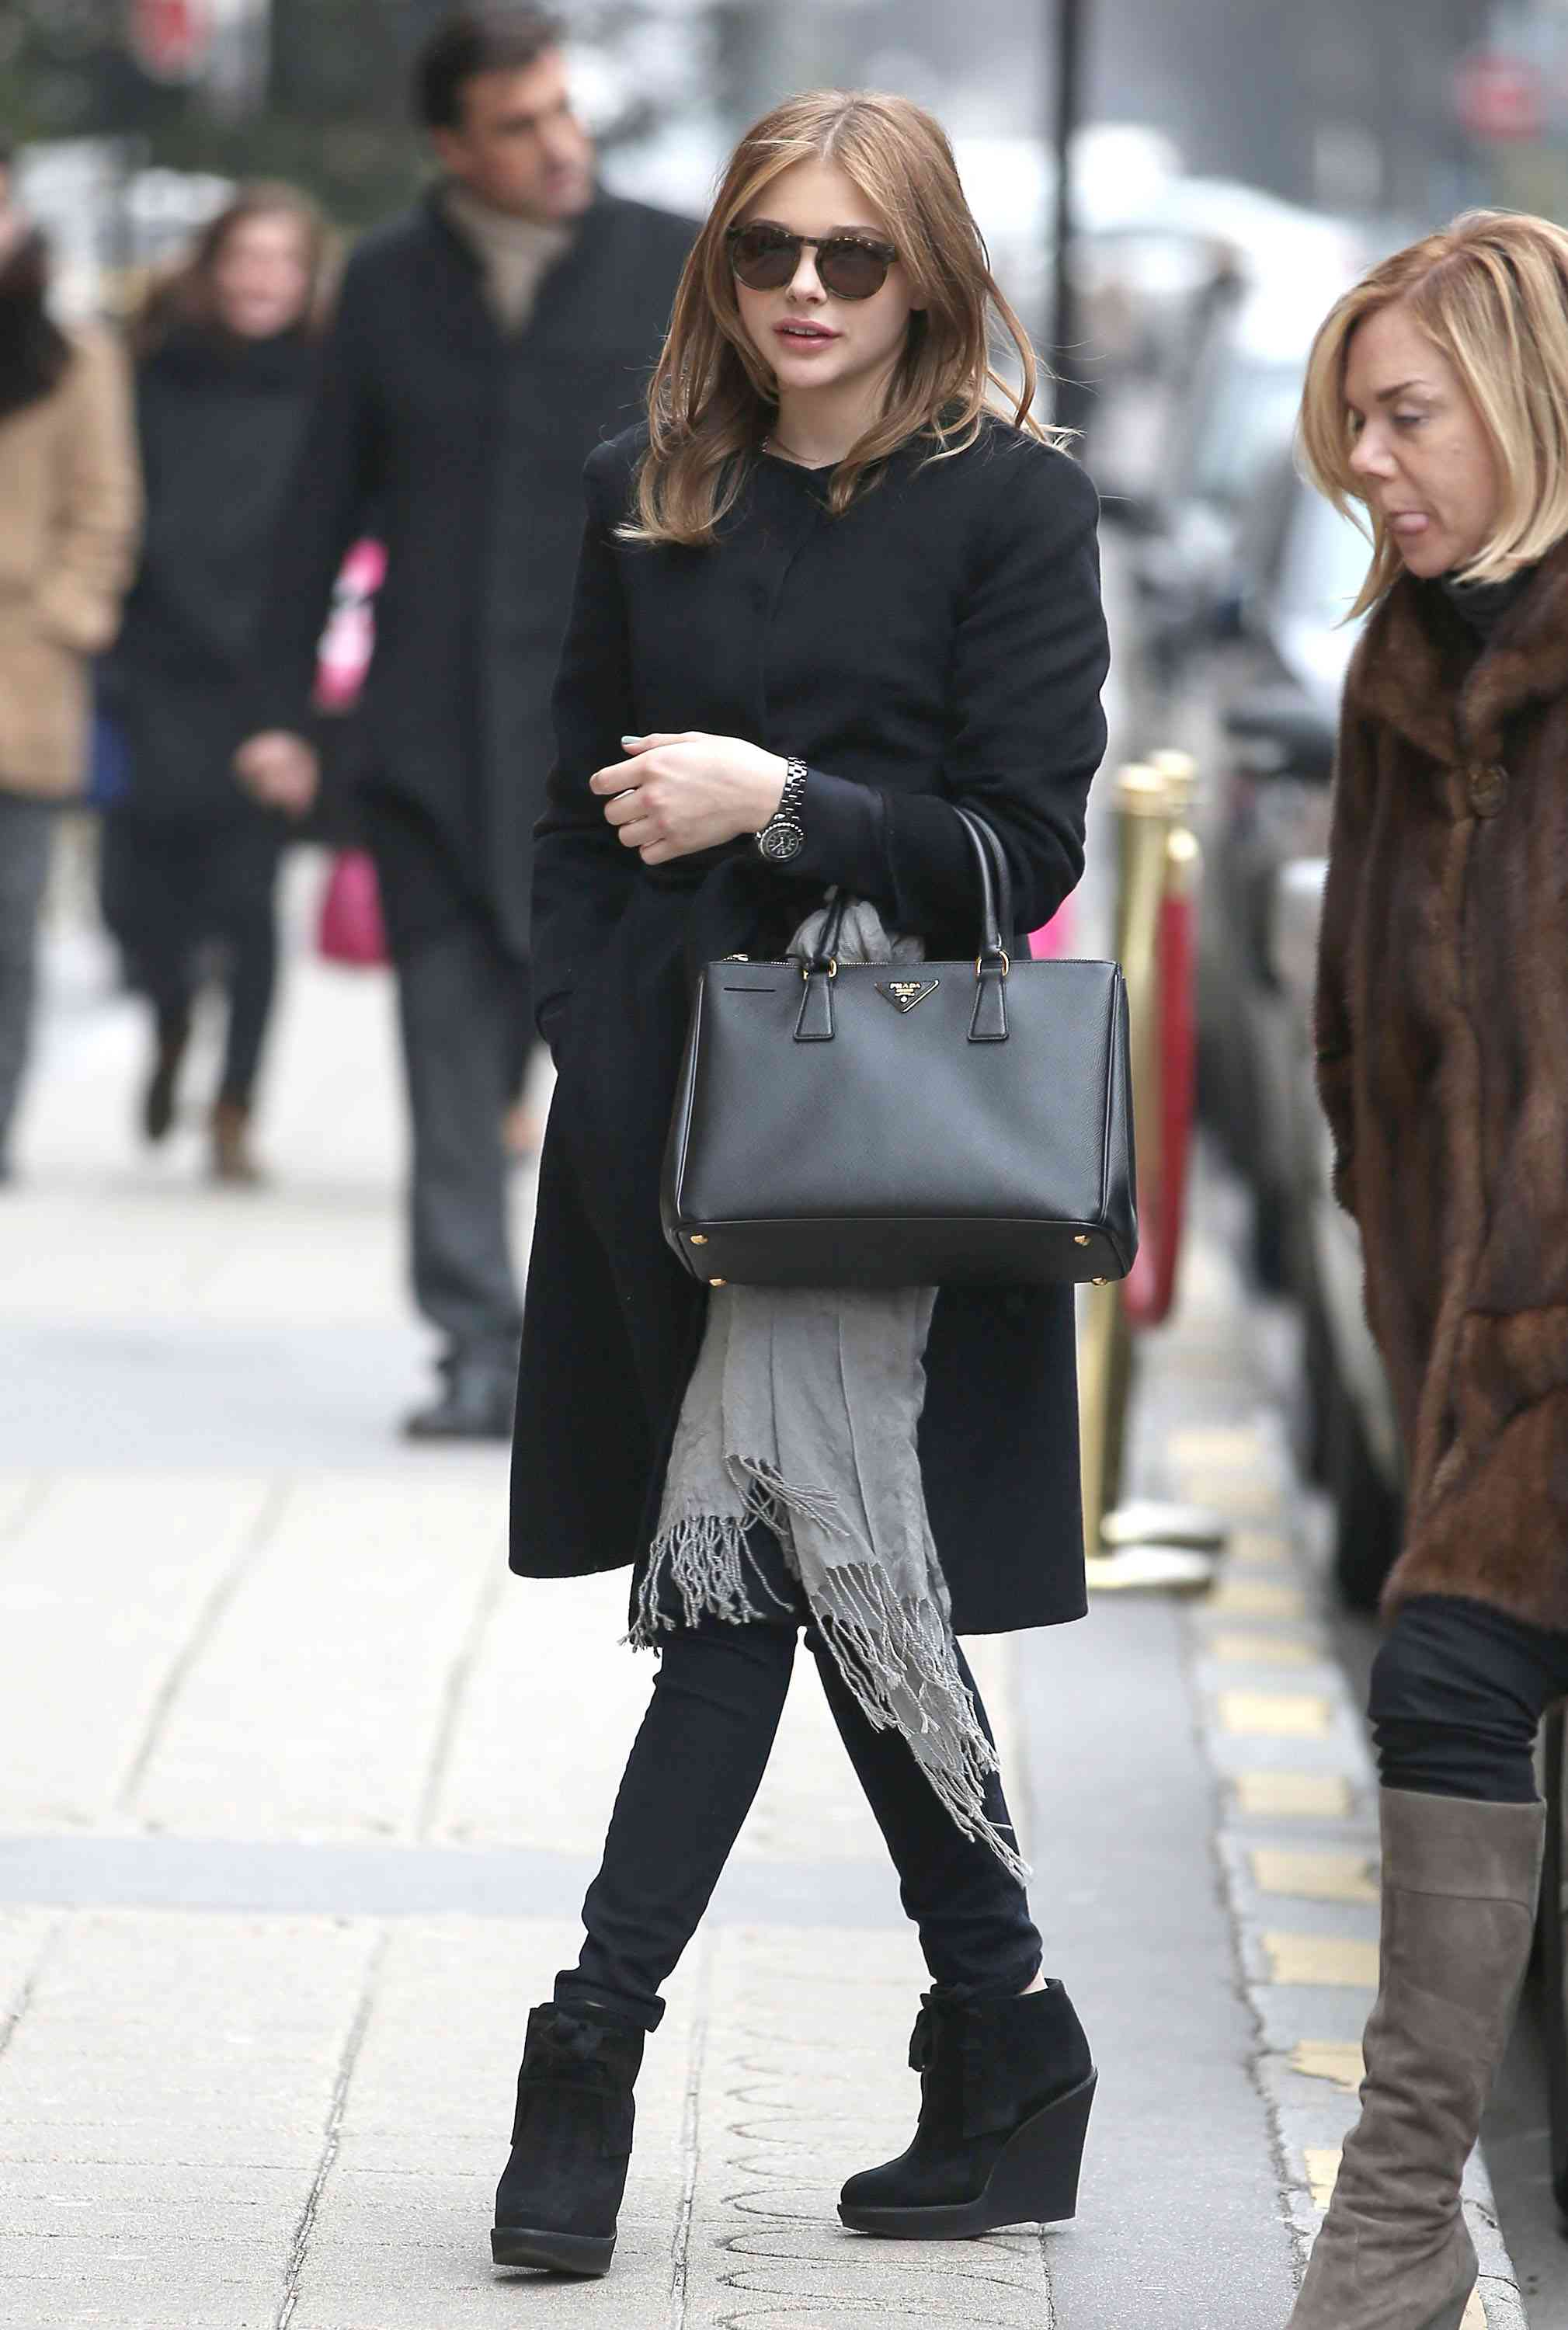 Style Profile Chloe Grace Moretz I Want Her Outfit